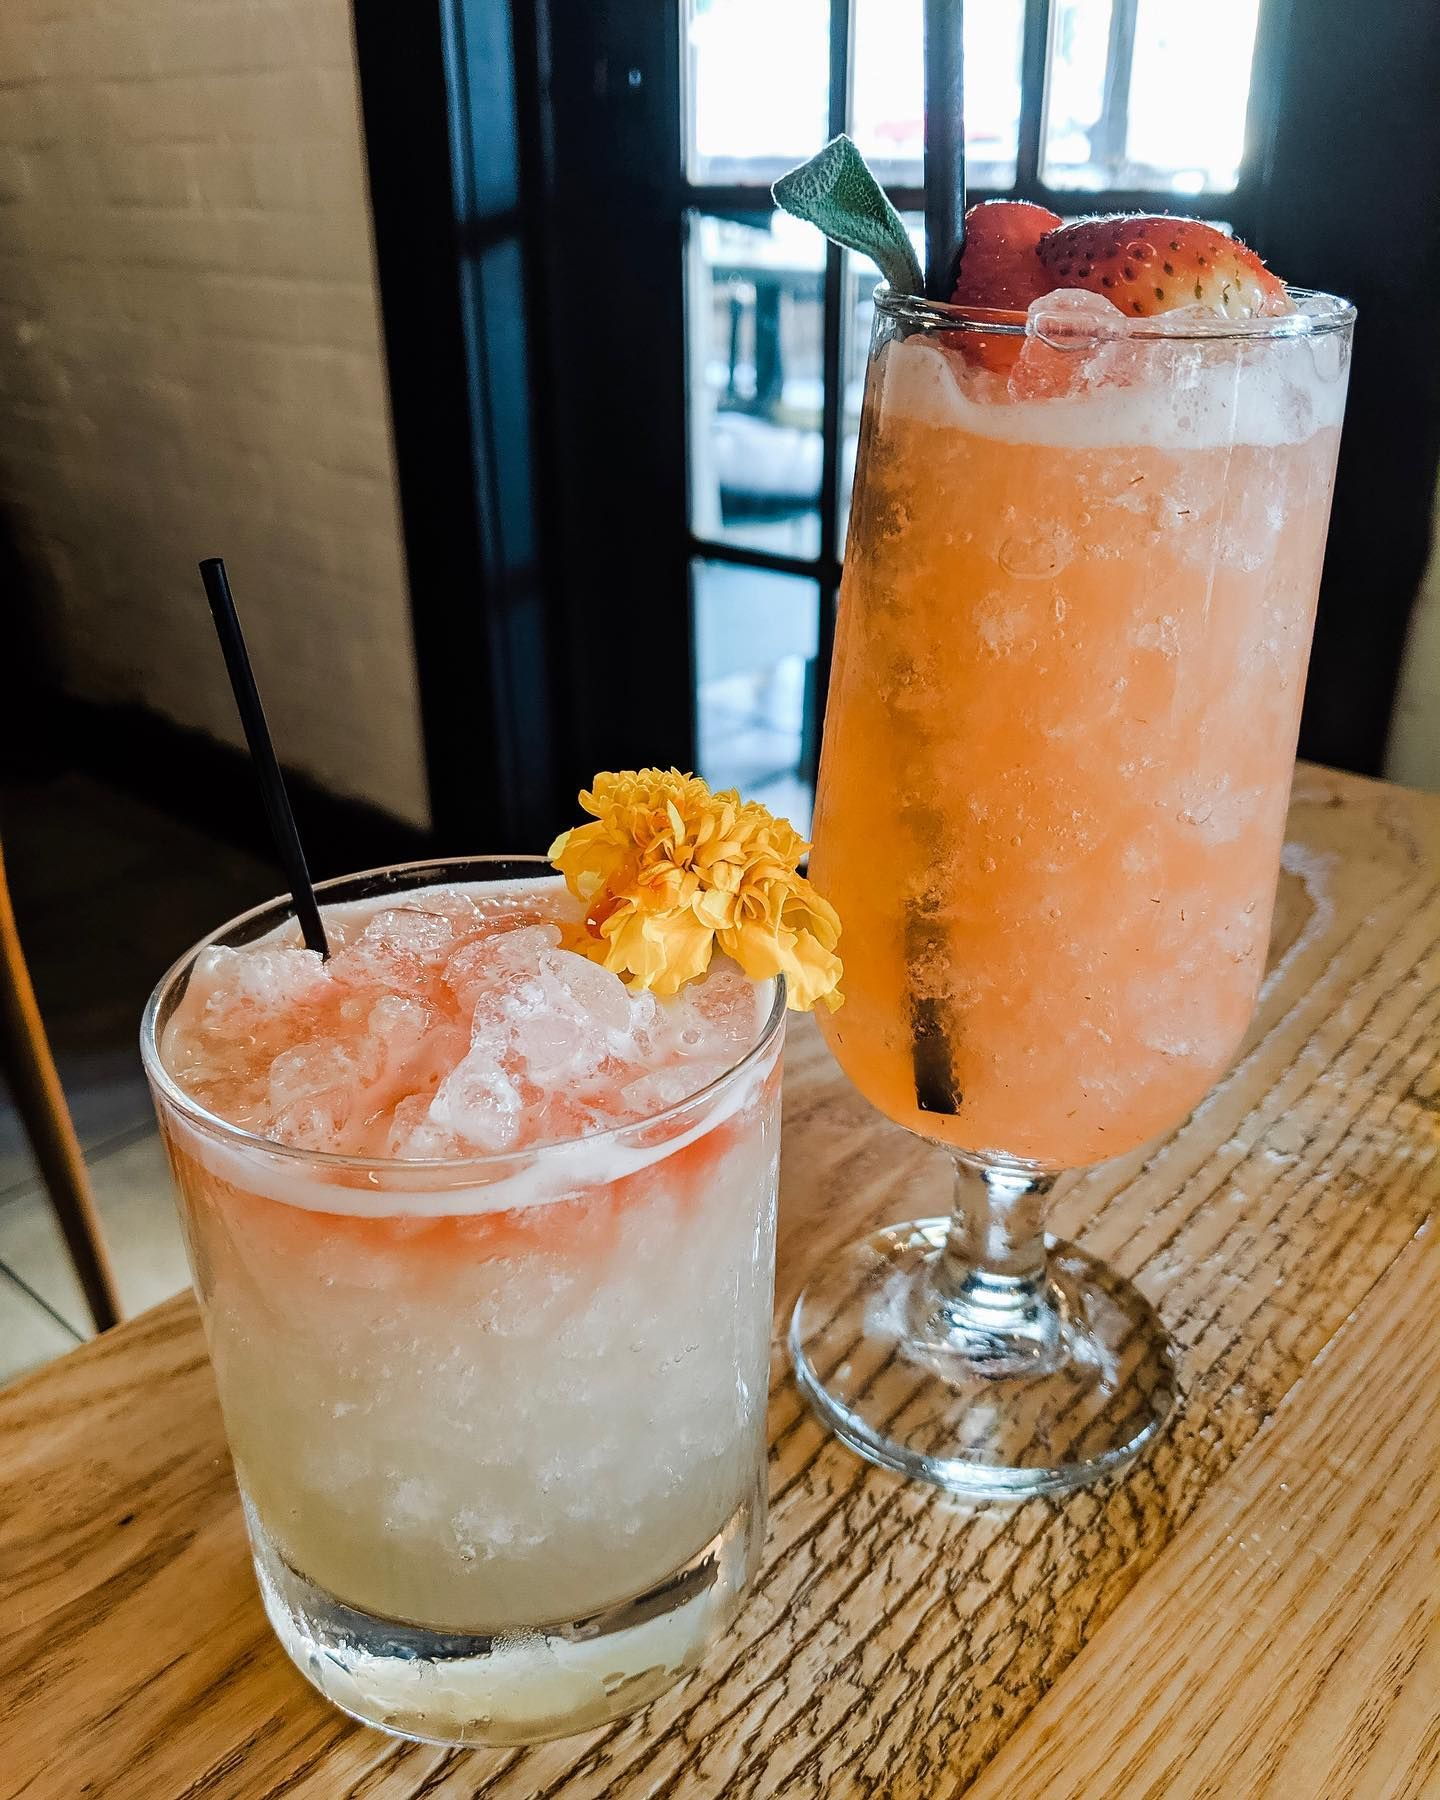 COCKTAILS from Boca Tampa! • Crimson & Clover with Waterloo #9